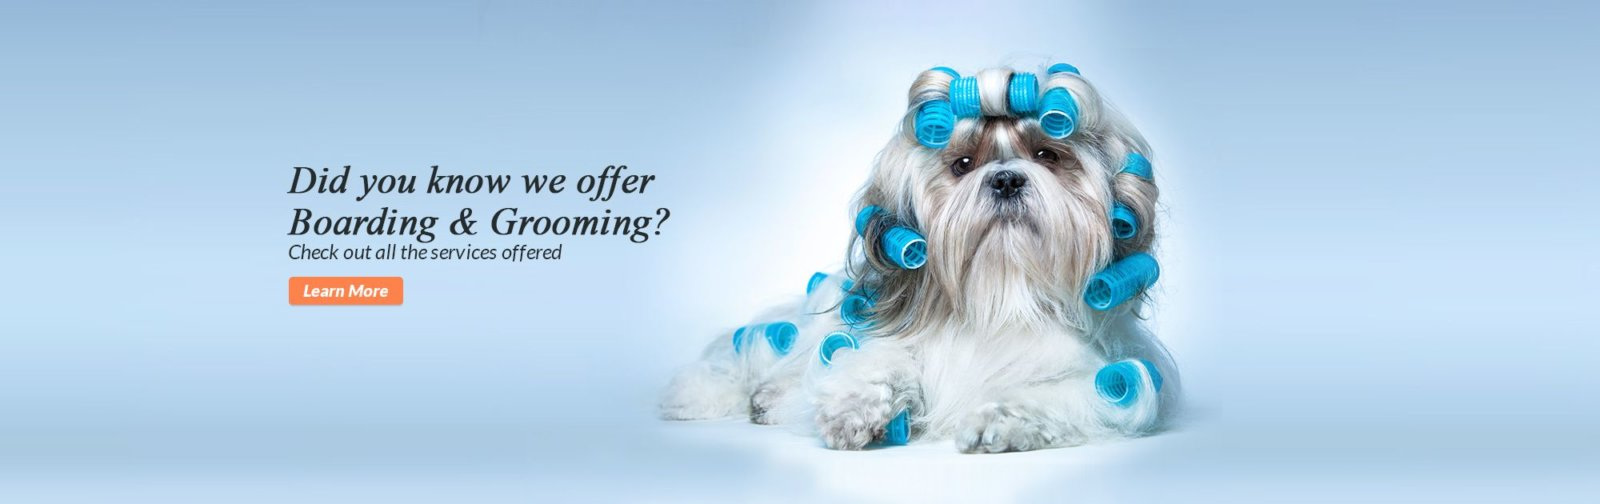 Did you know we offer Boarding & Grooming? Check out all the services offered. Learn More.